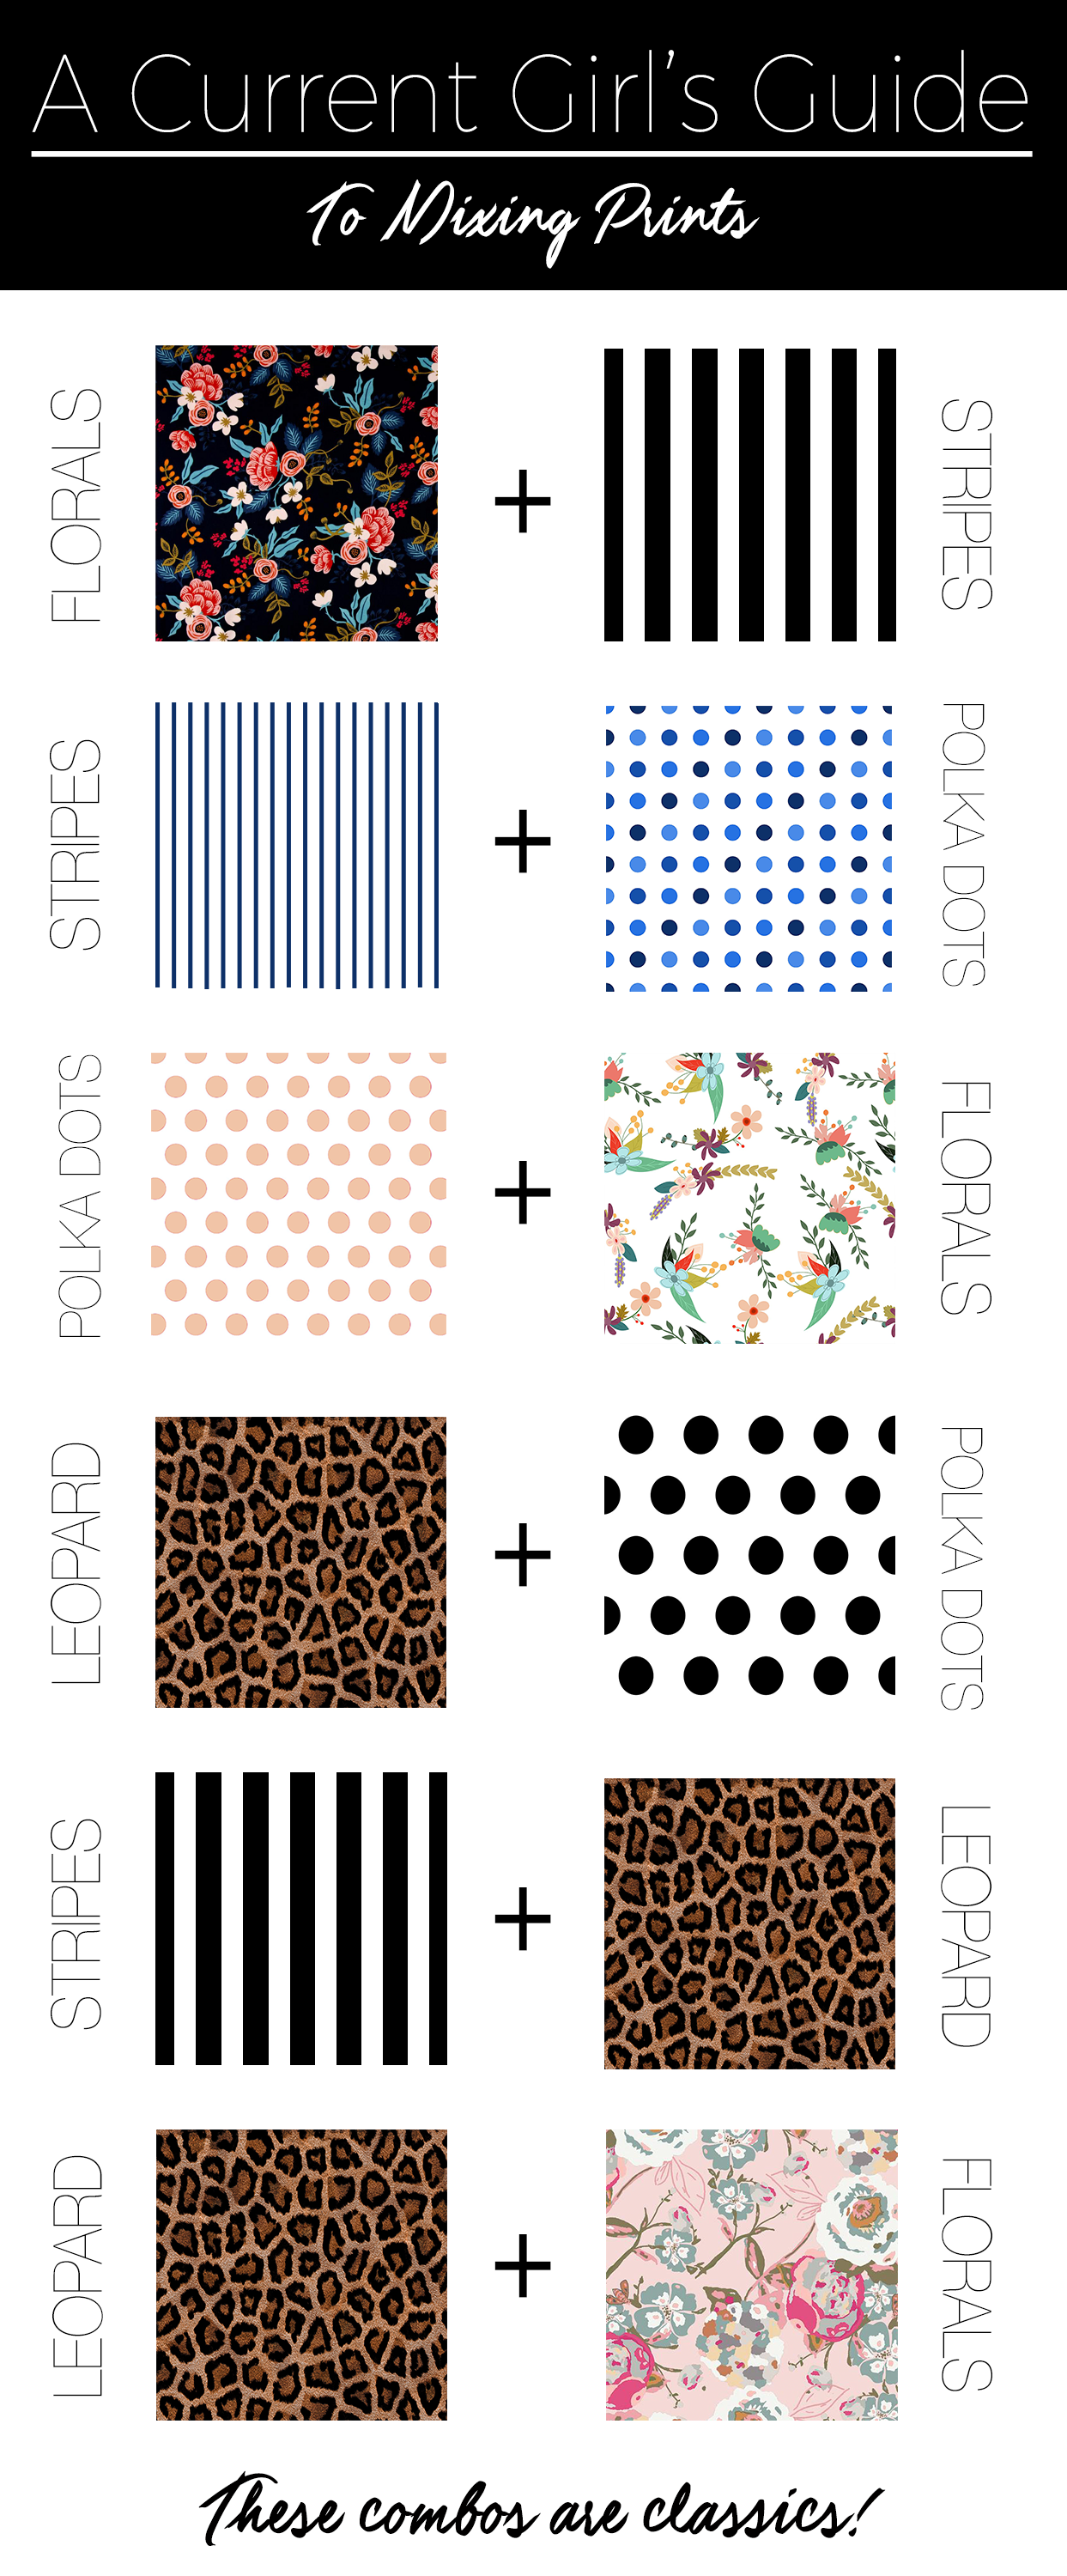 Current Girl's Guide to mixing matching prints